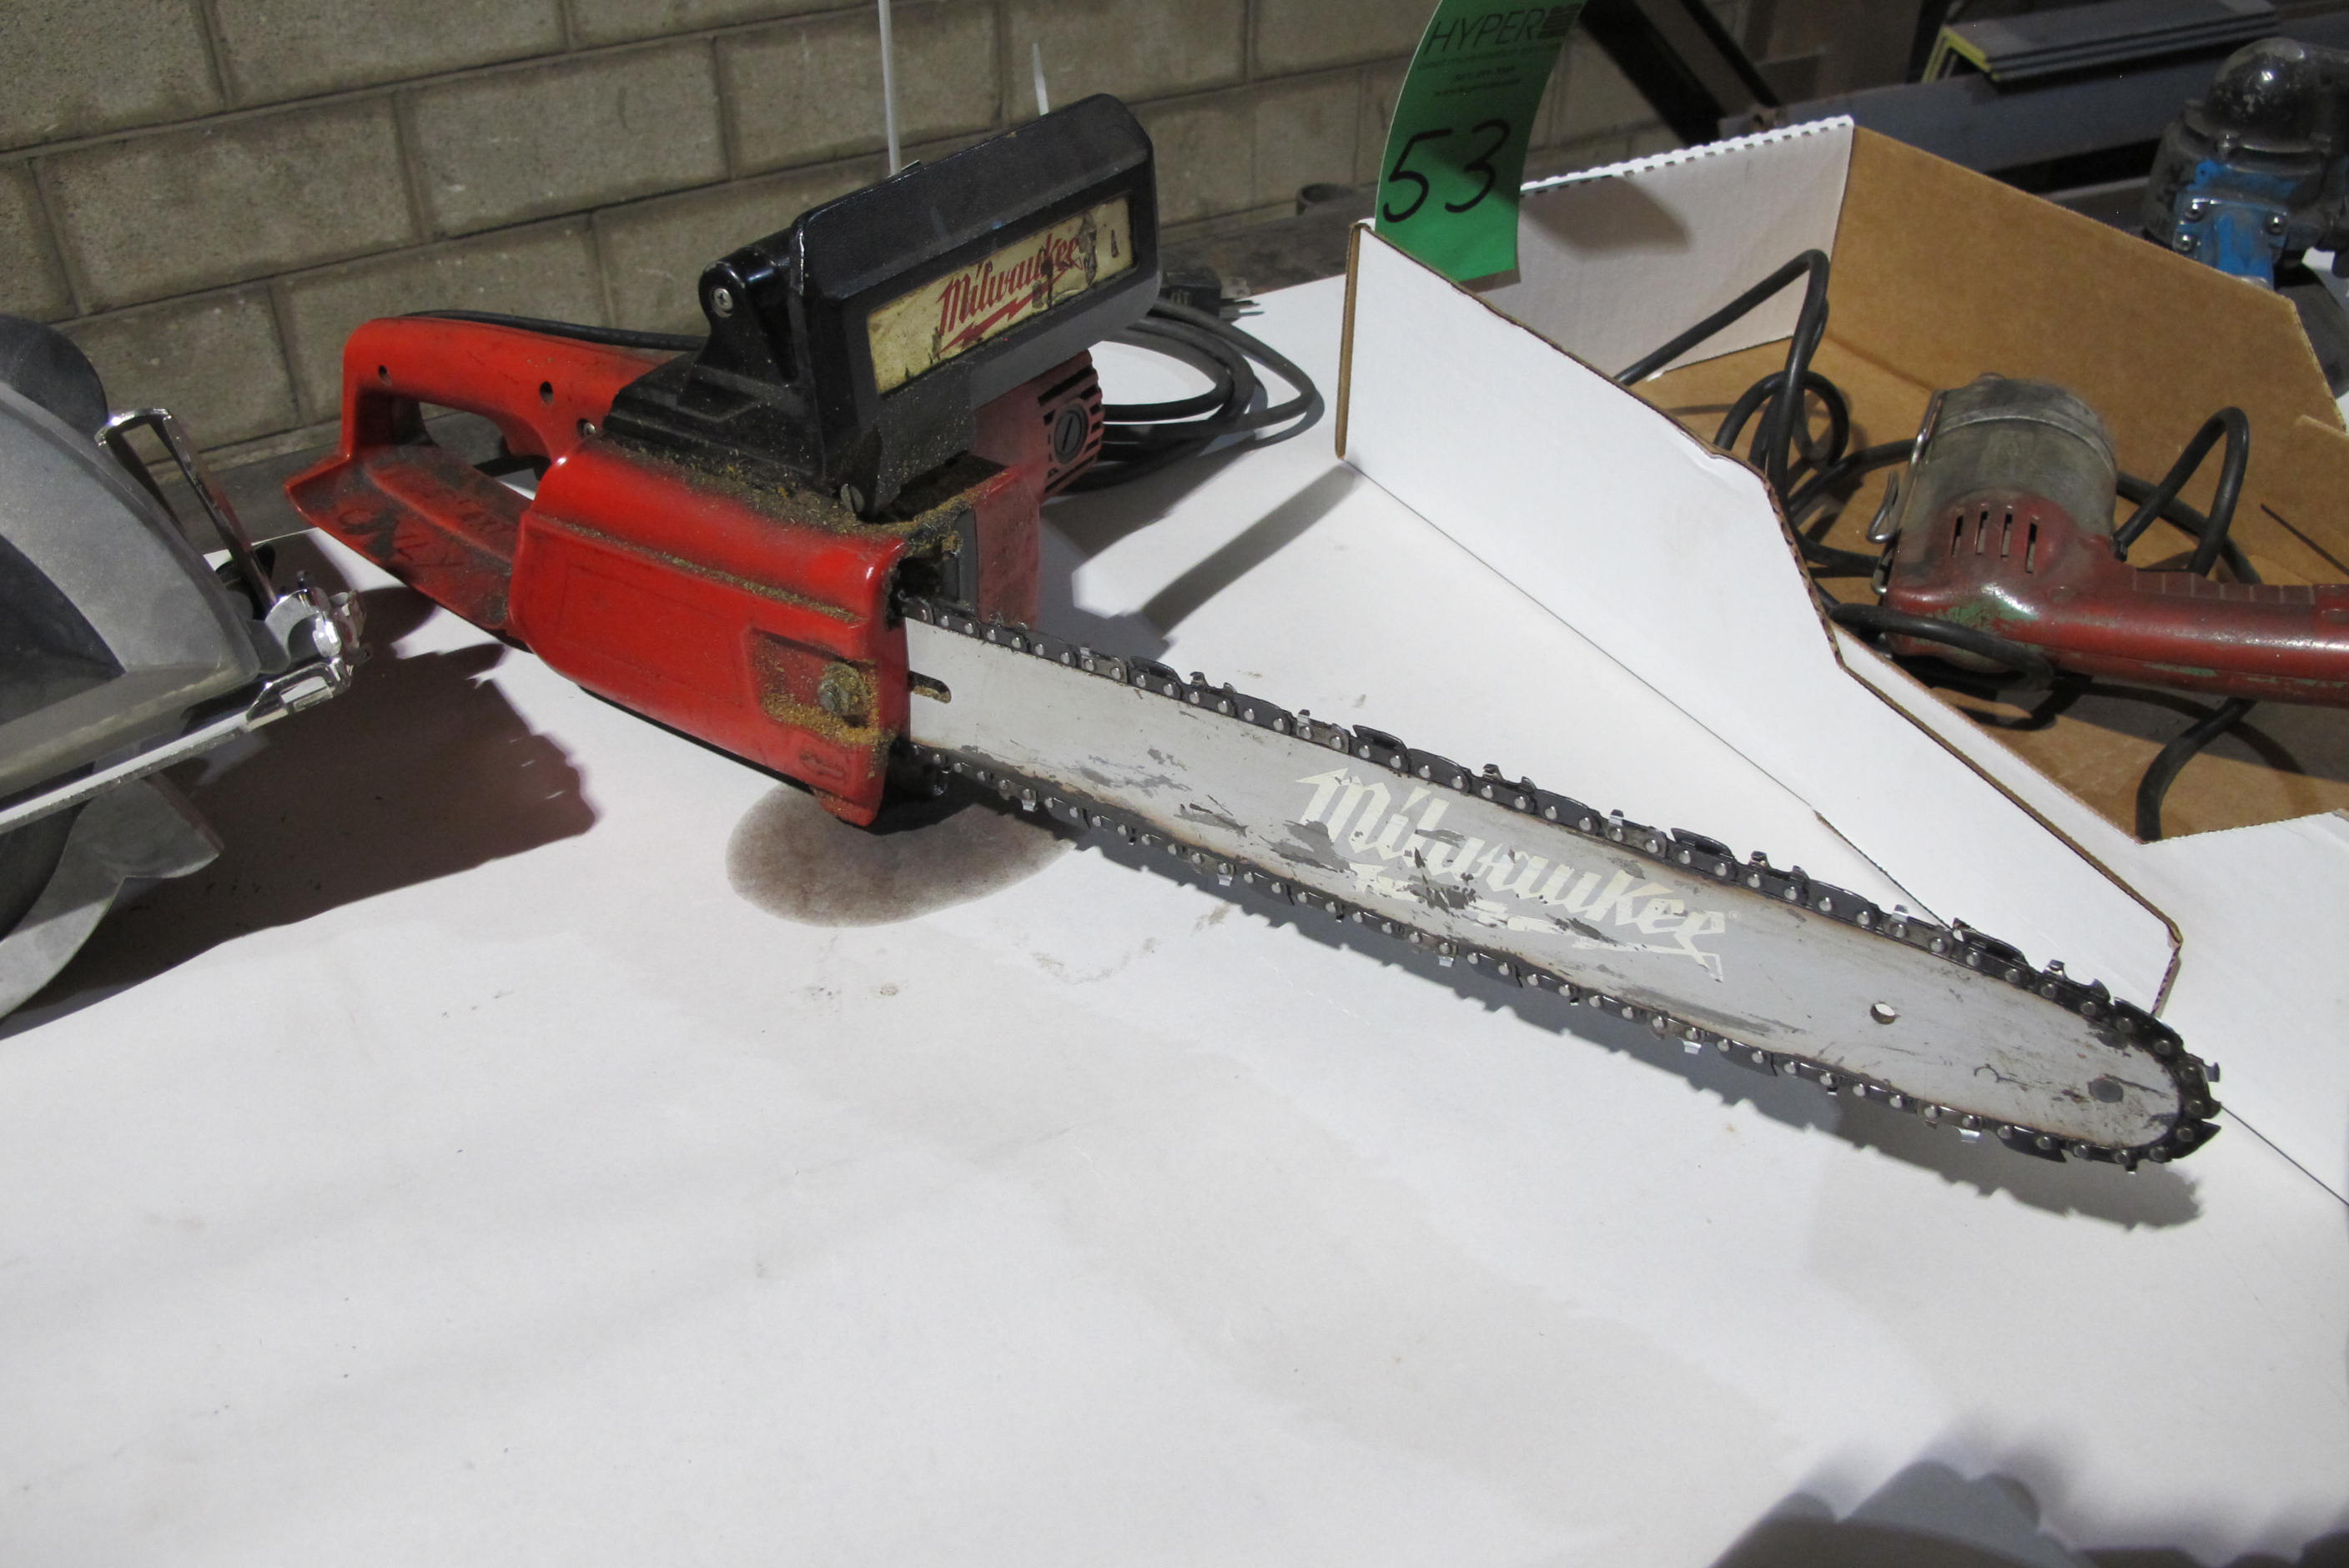 Lot 52 - Milwaukee electric chain saw